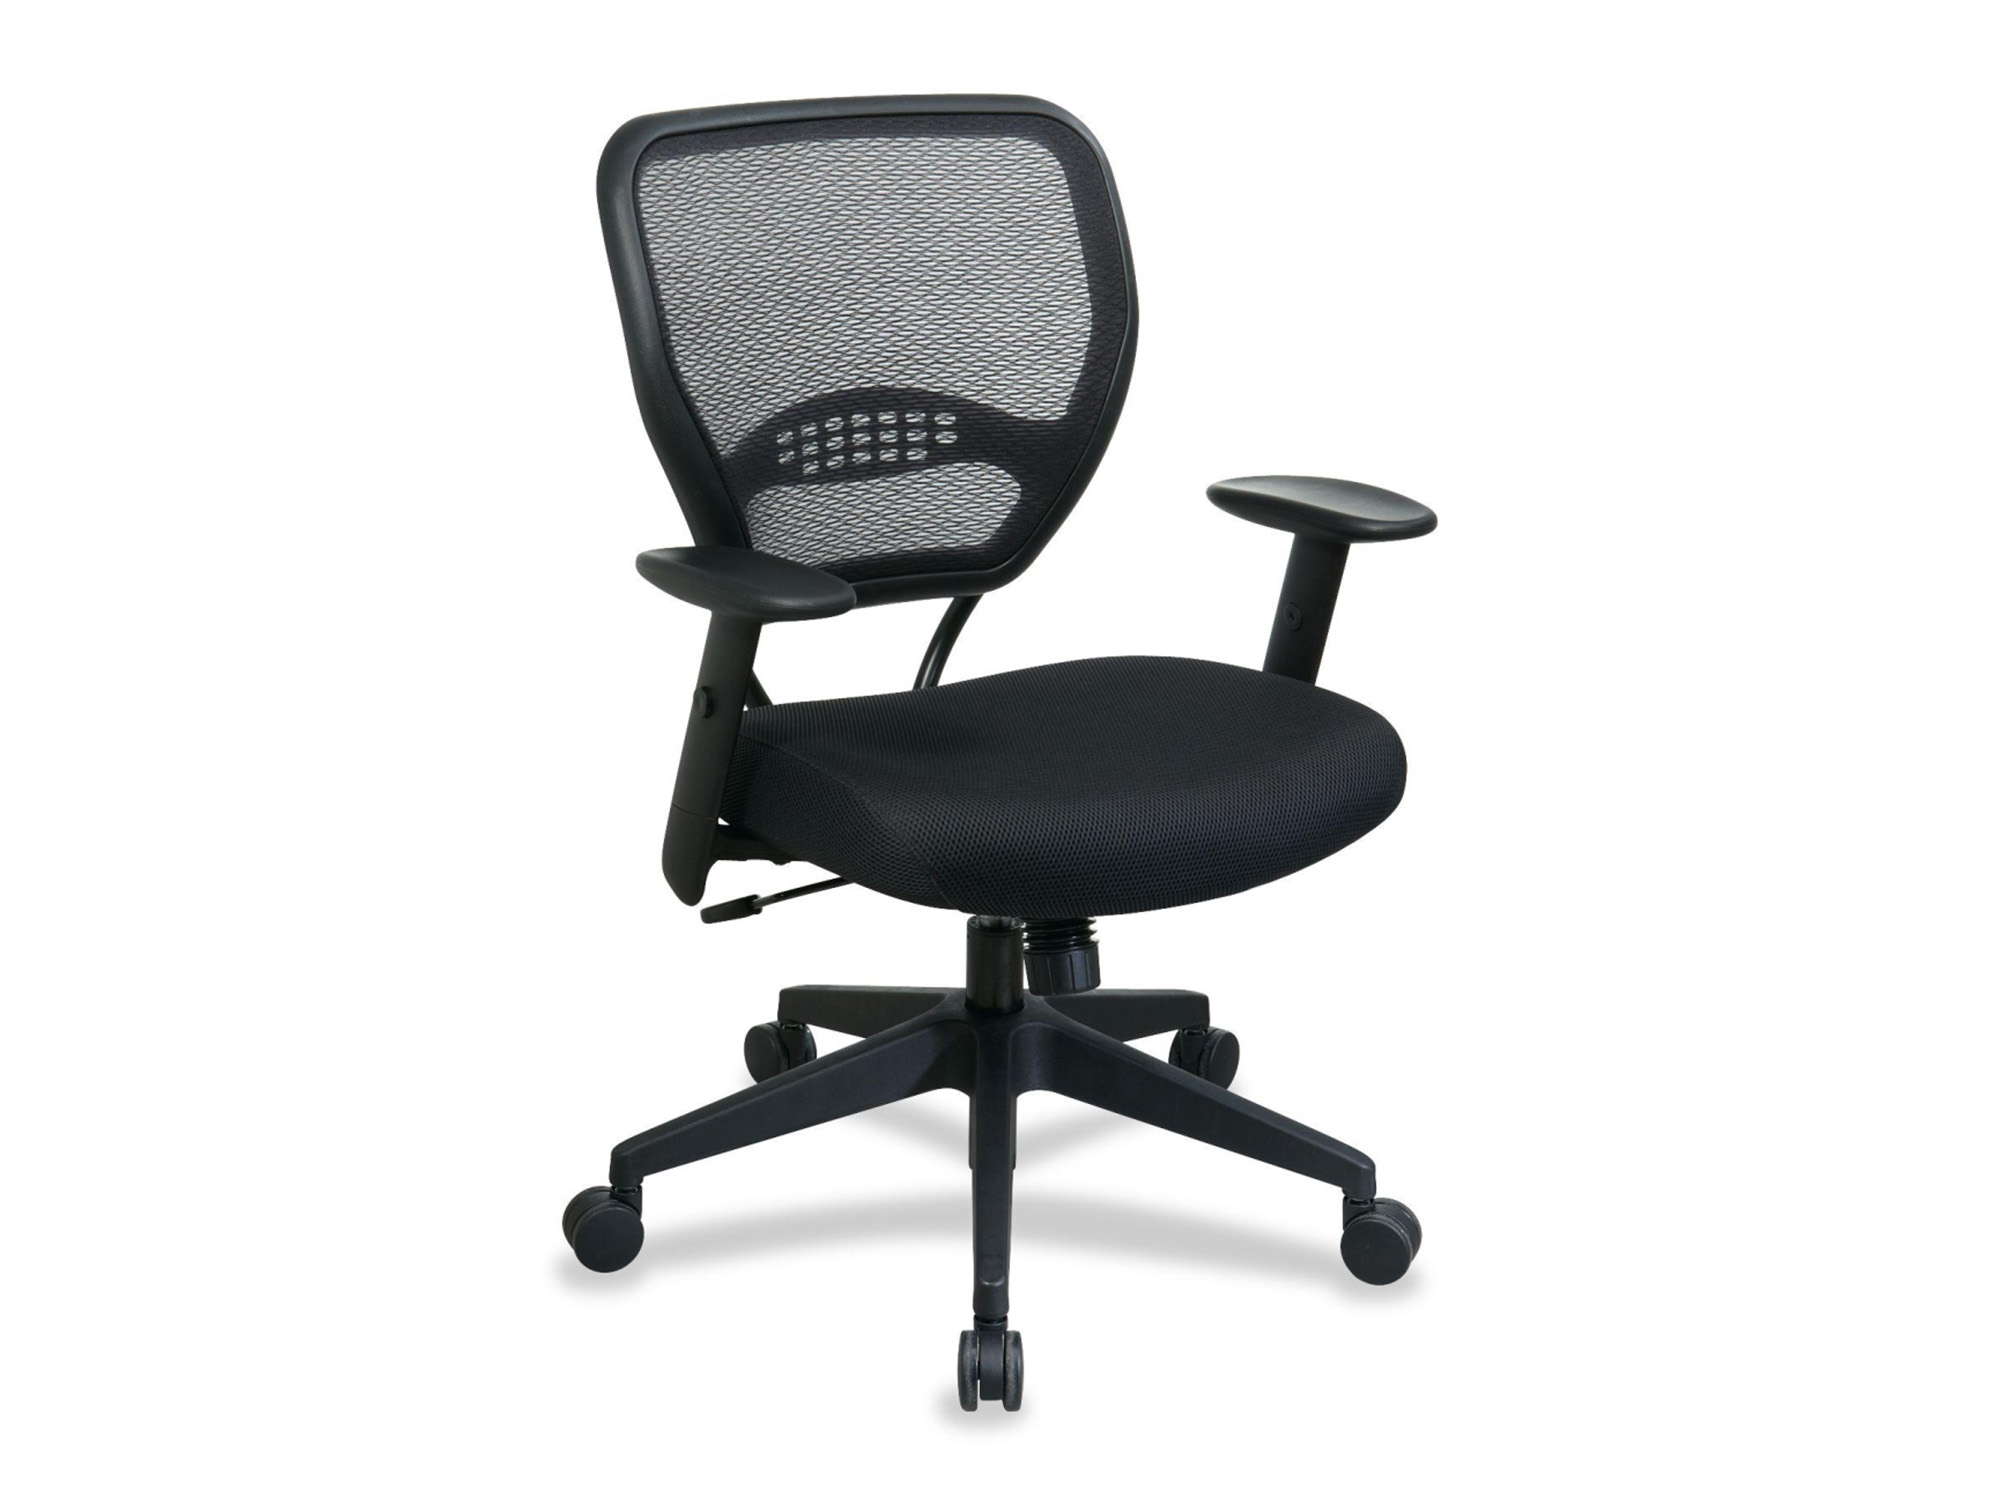 ergonomic mesh office chair office task chairs chairs for office